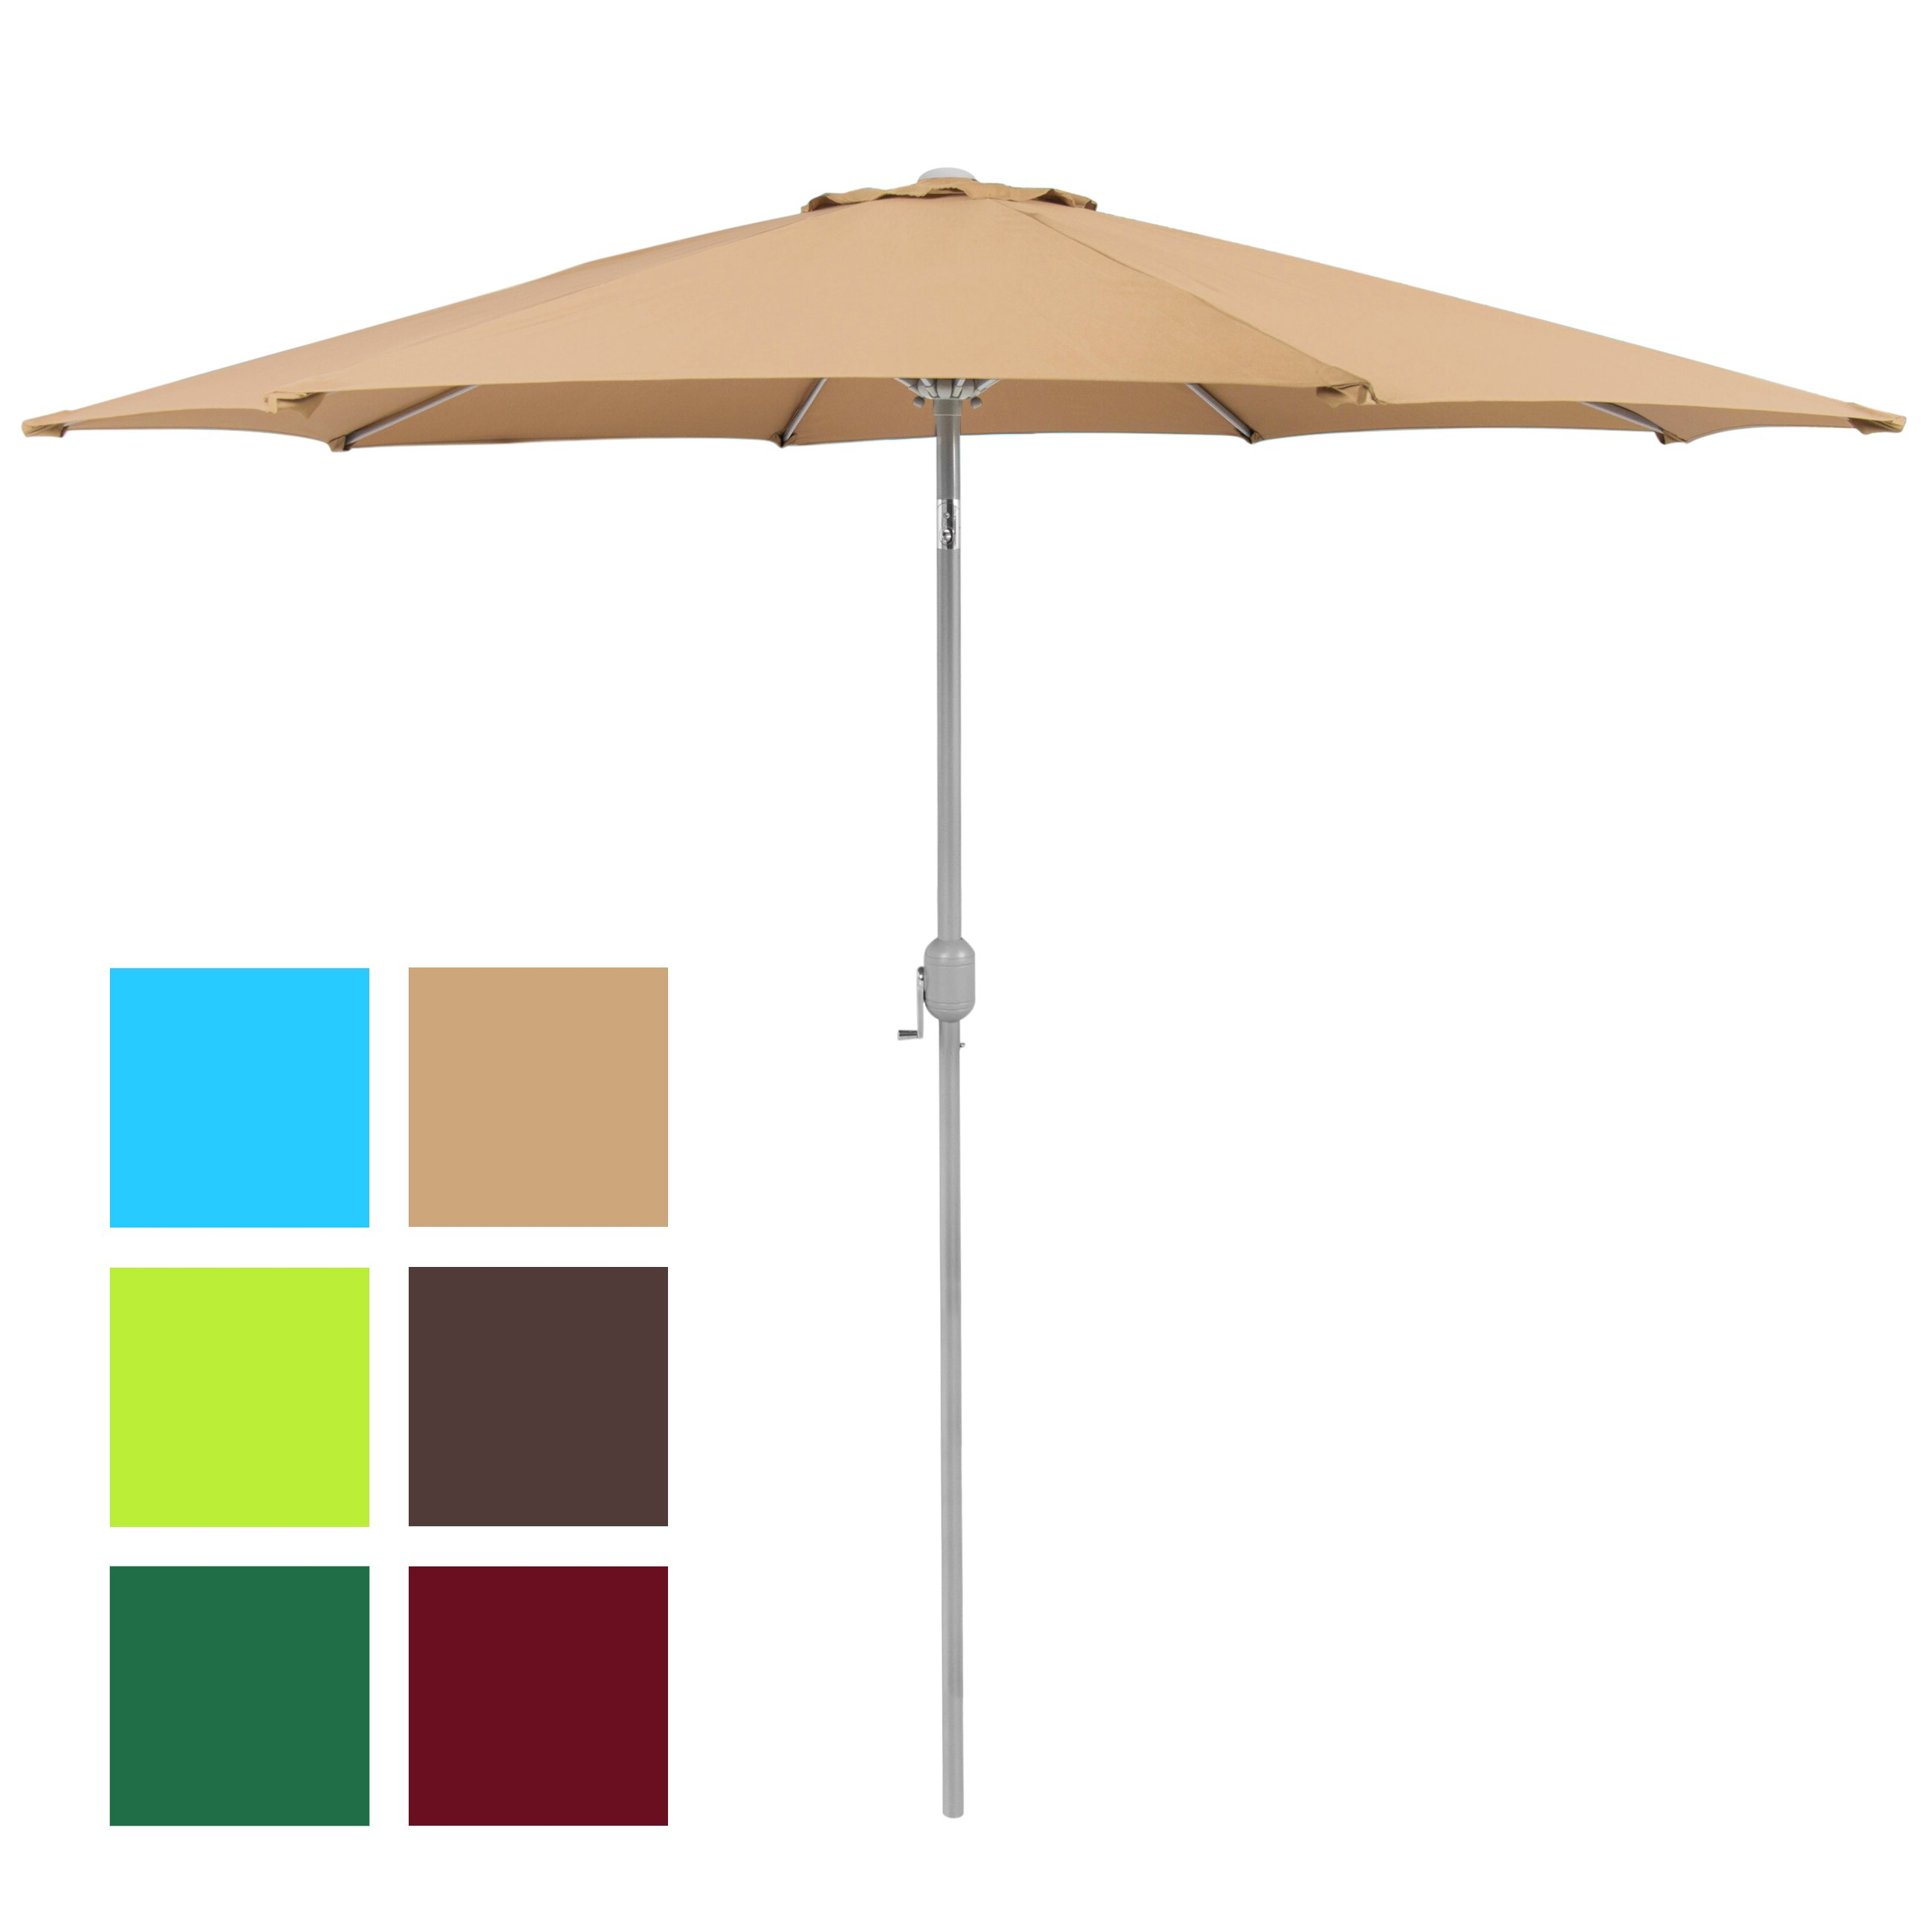 Latest Patio Umbrella 9' Aluminum Patio Market Umbrella Tilt W/ Crank Outdoor Tan Regarding Market Umbrellas (Gallery 10 of 20)